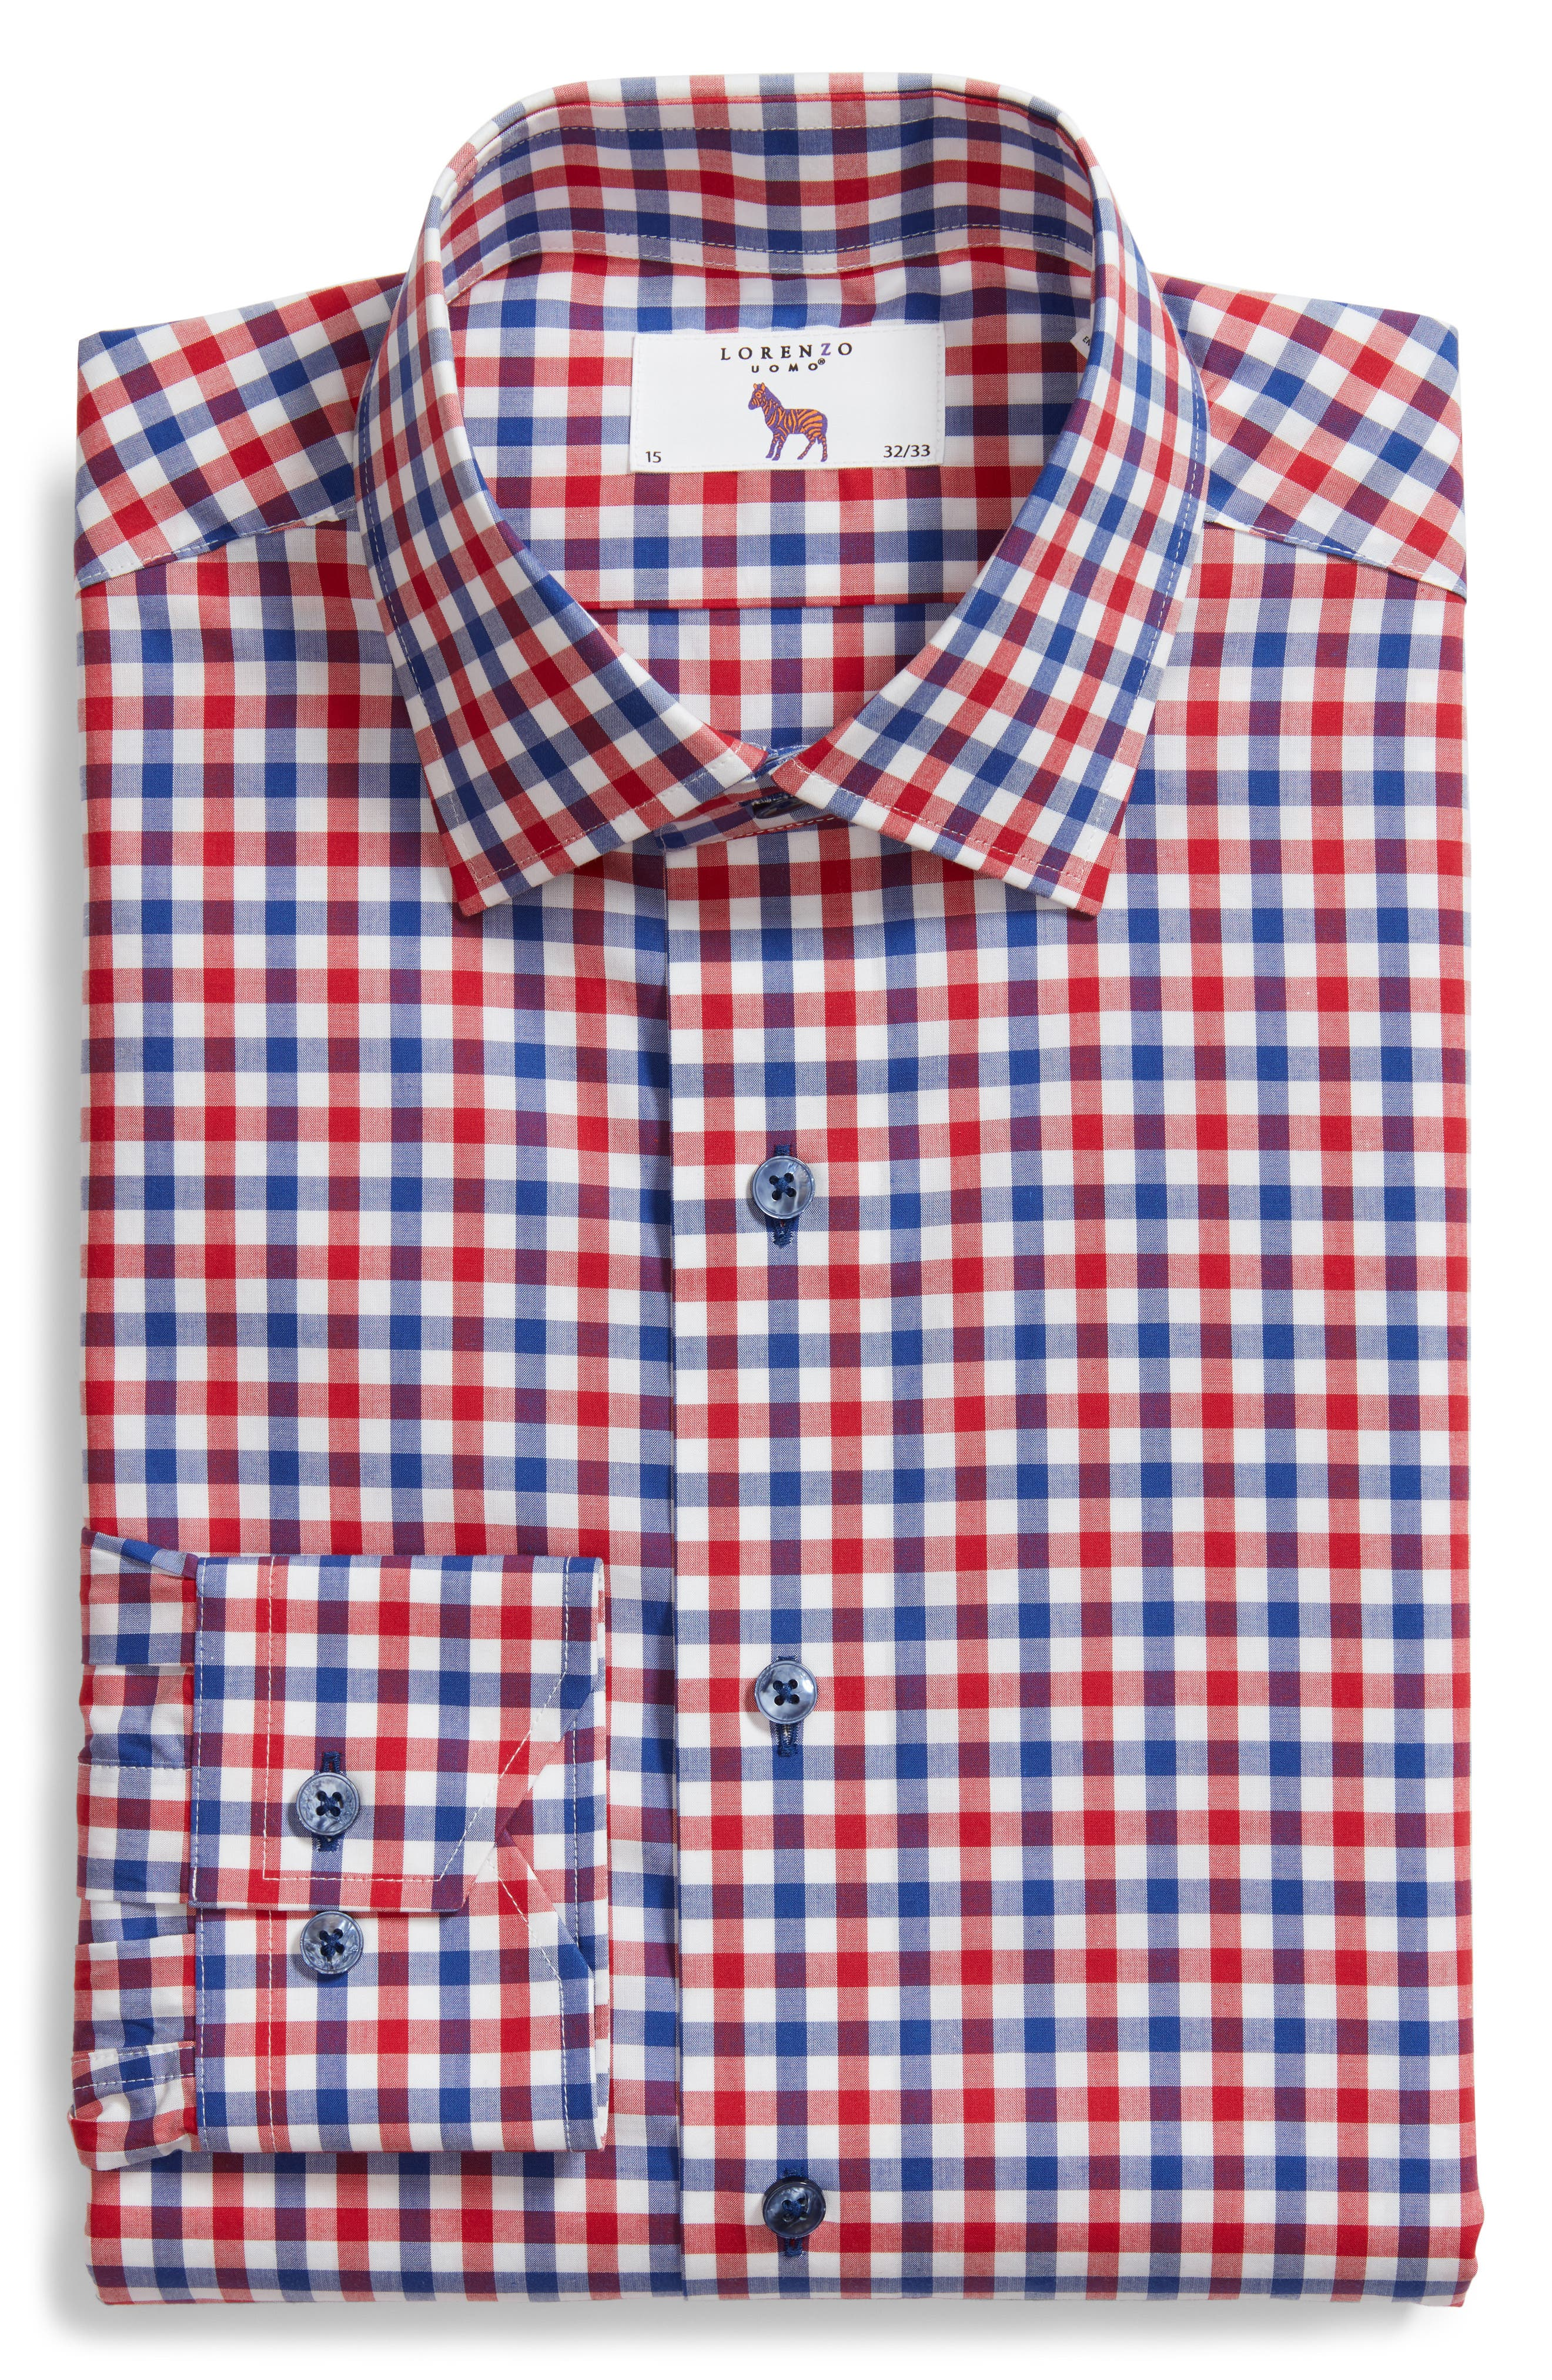 Trim Fit Check Dress Shirt,                             Alternate thumbnail 5, color,                             NAVY/ RED